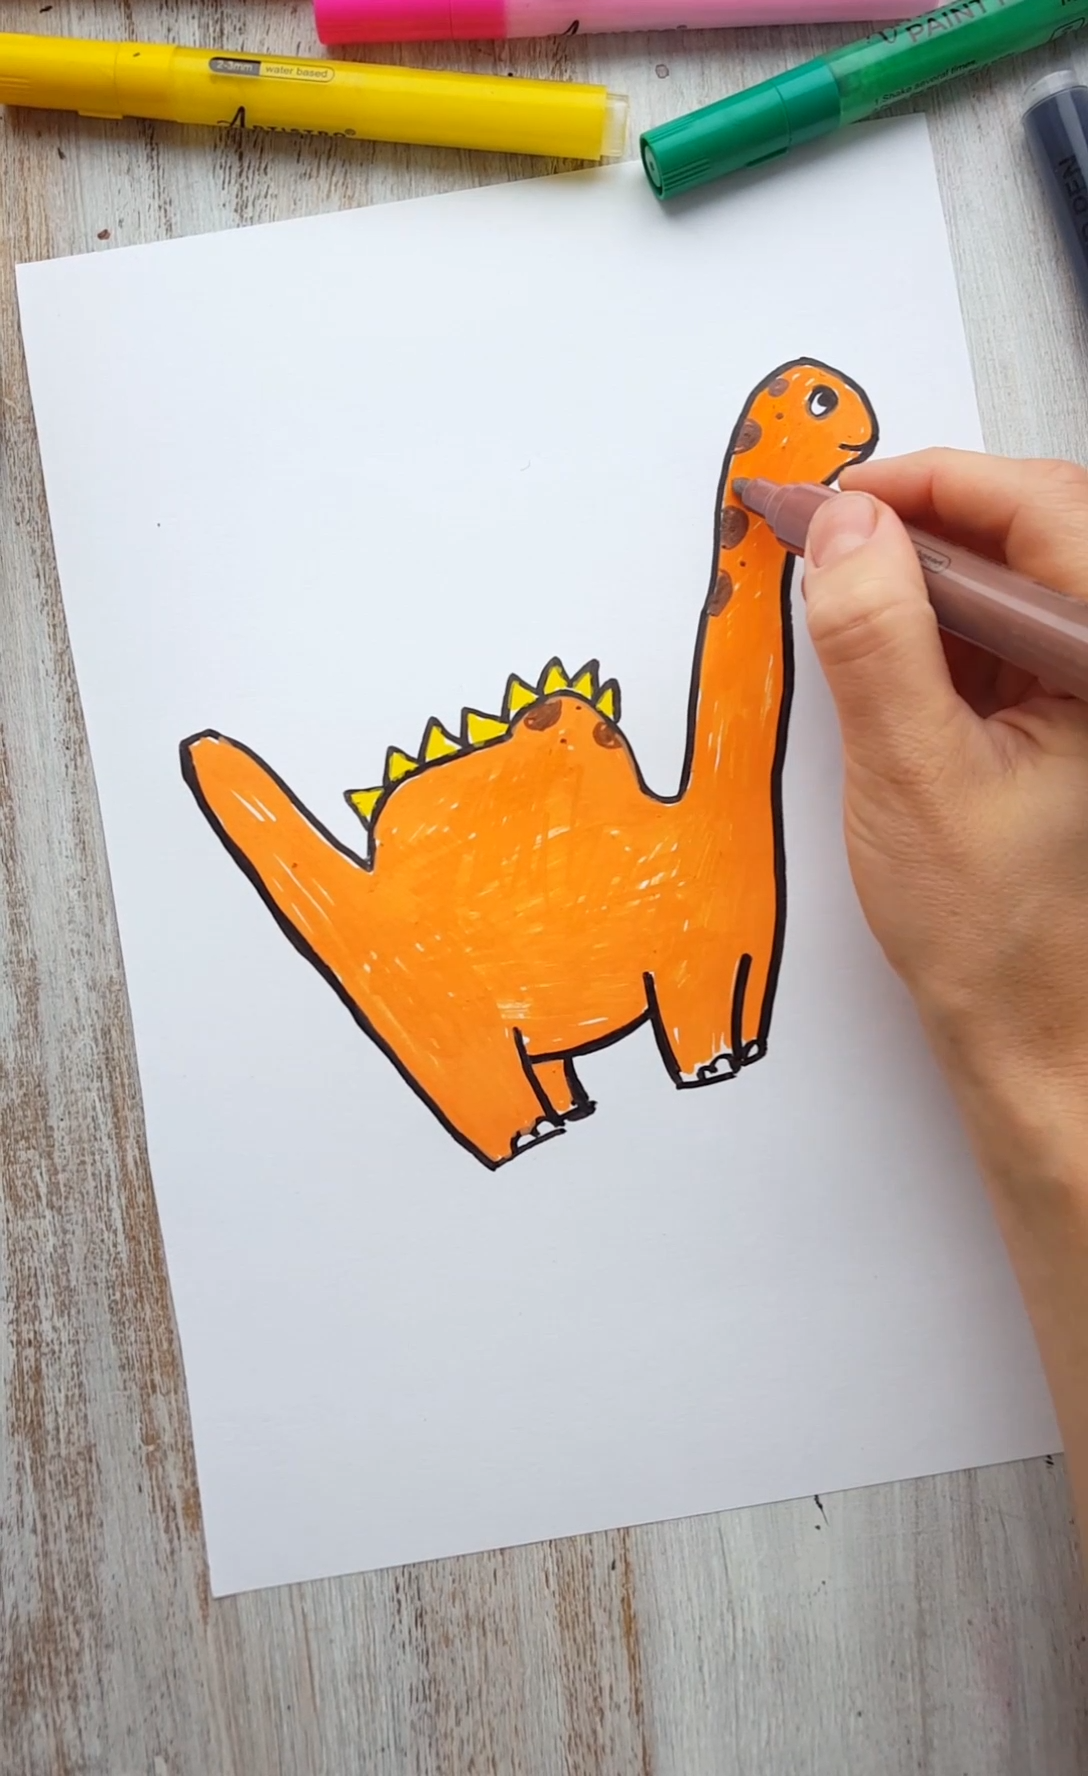 Easy guide how to draw dinosaurs #potterypaintingdesigns